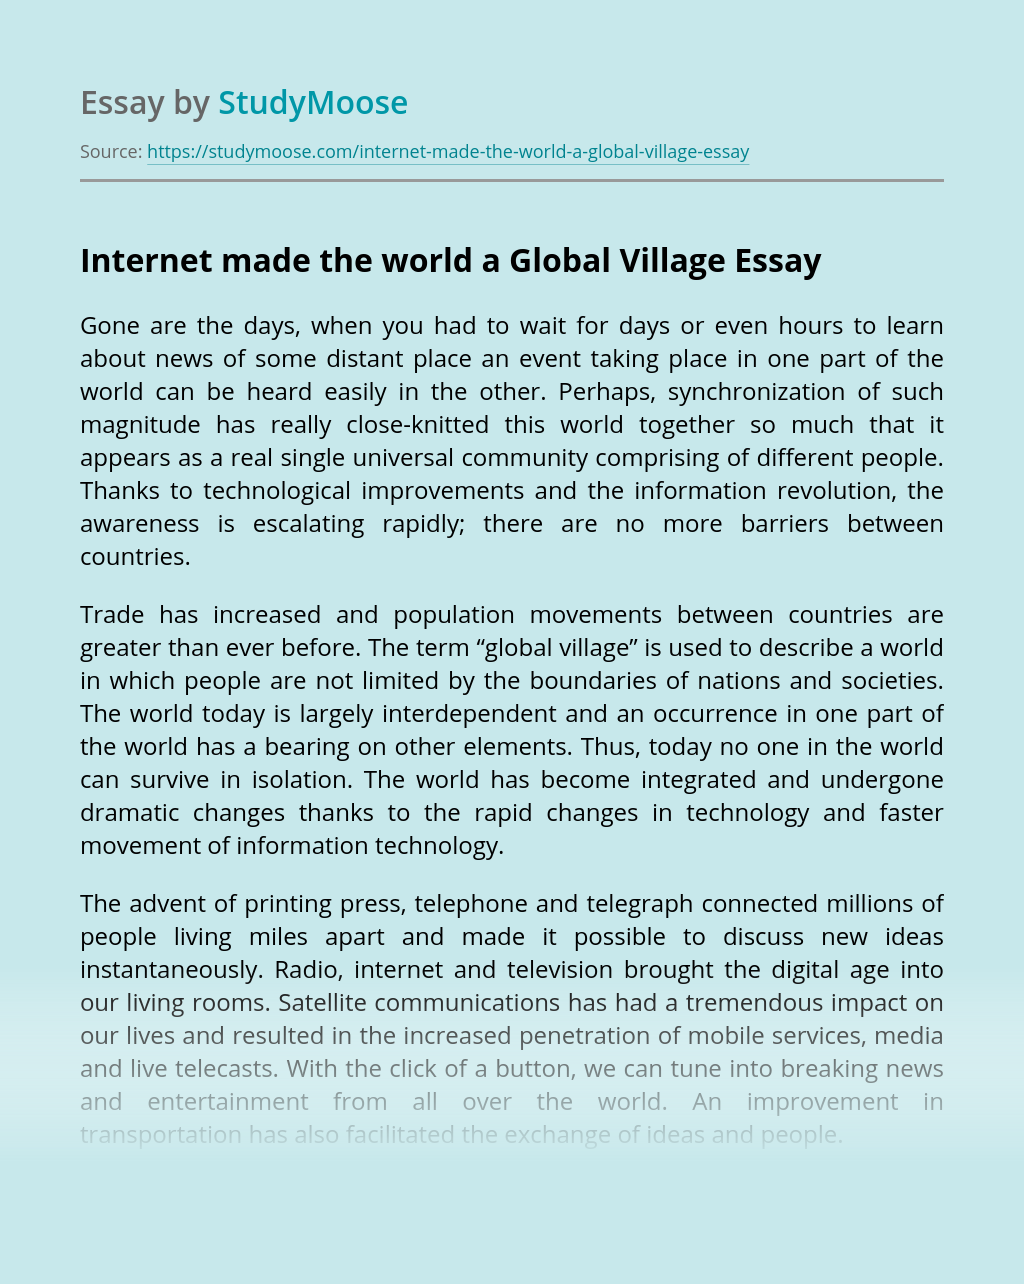 The rights and duties of citizen of global village essay write a sentence using auspicious